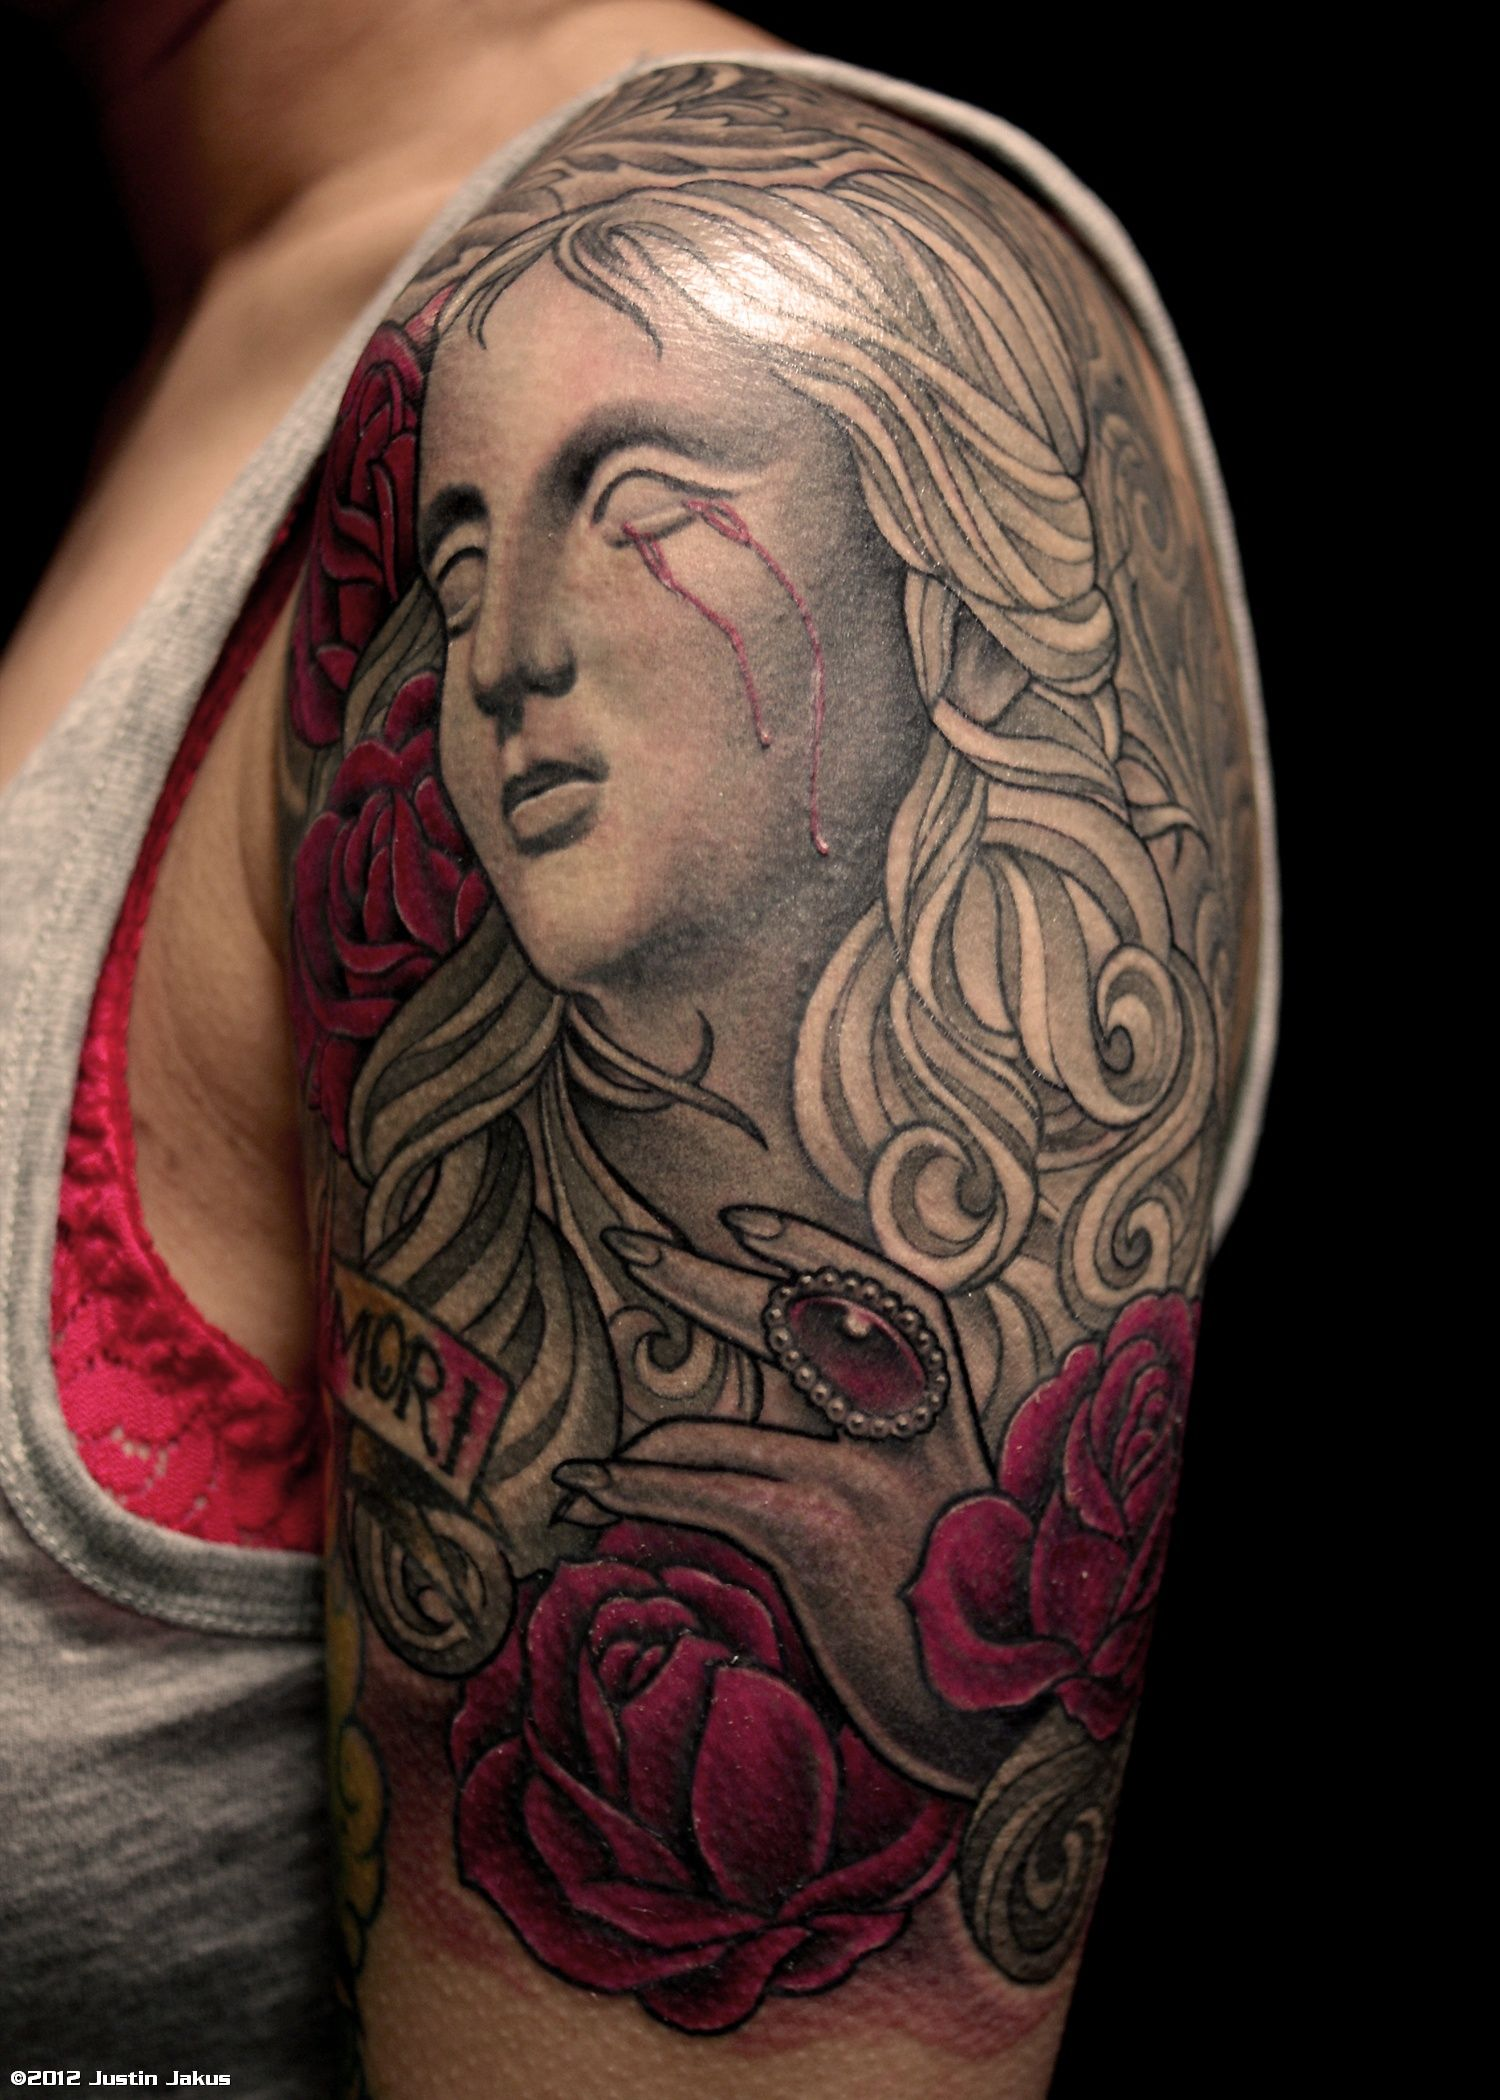 Maori Tattoo Shop: Statue Tattoo - Google Search